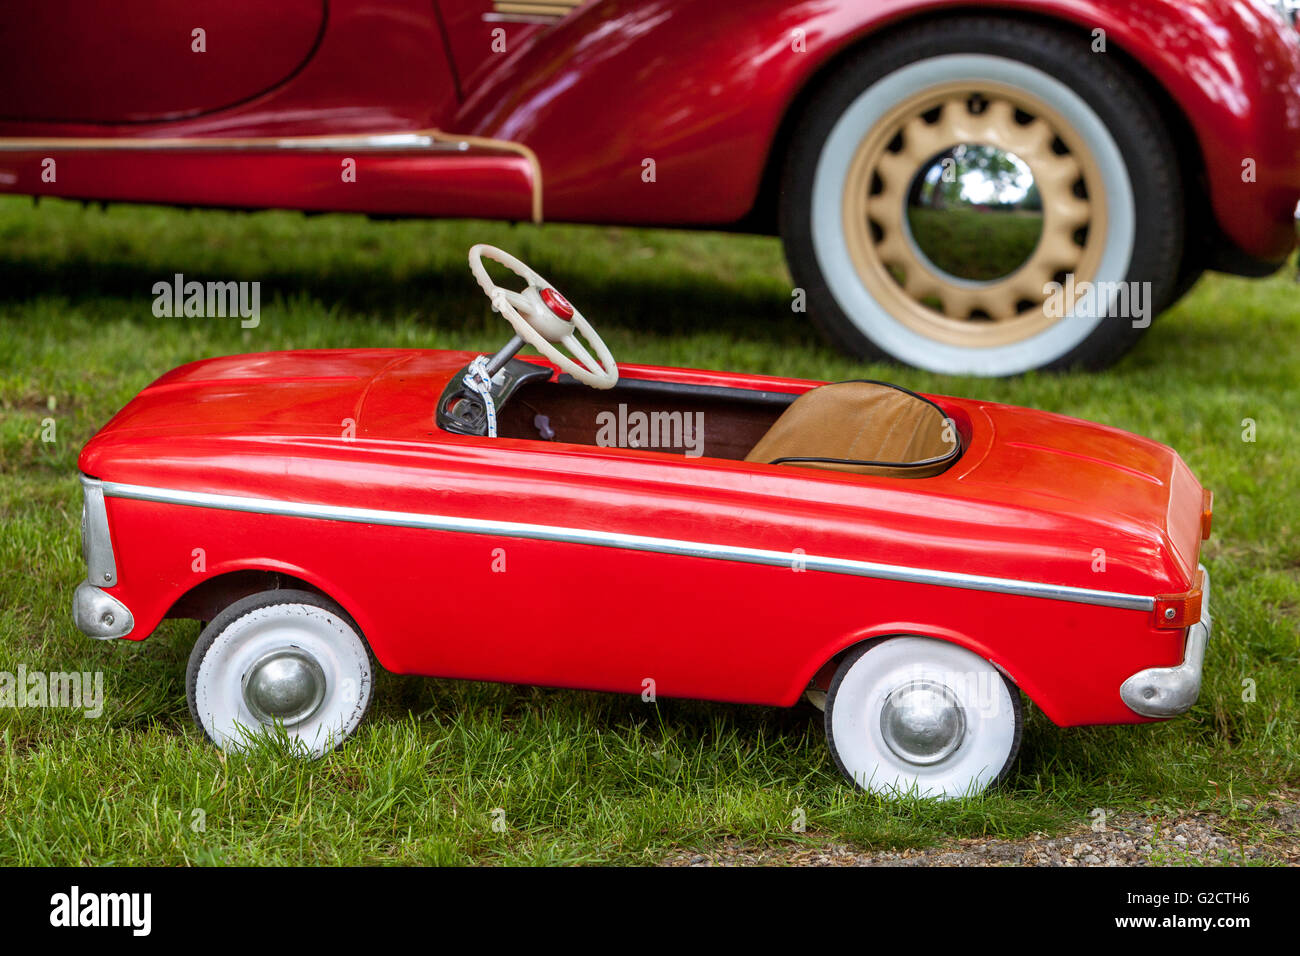 Pedal car  toy is parked, veteran cars - Stock Image